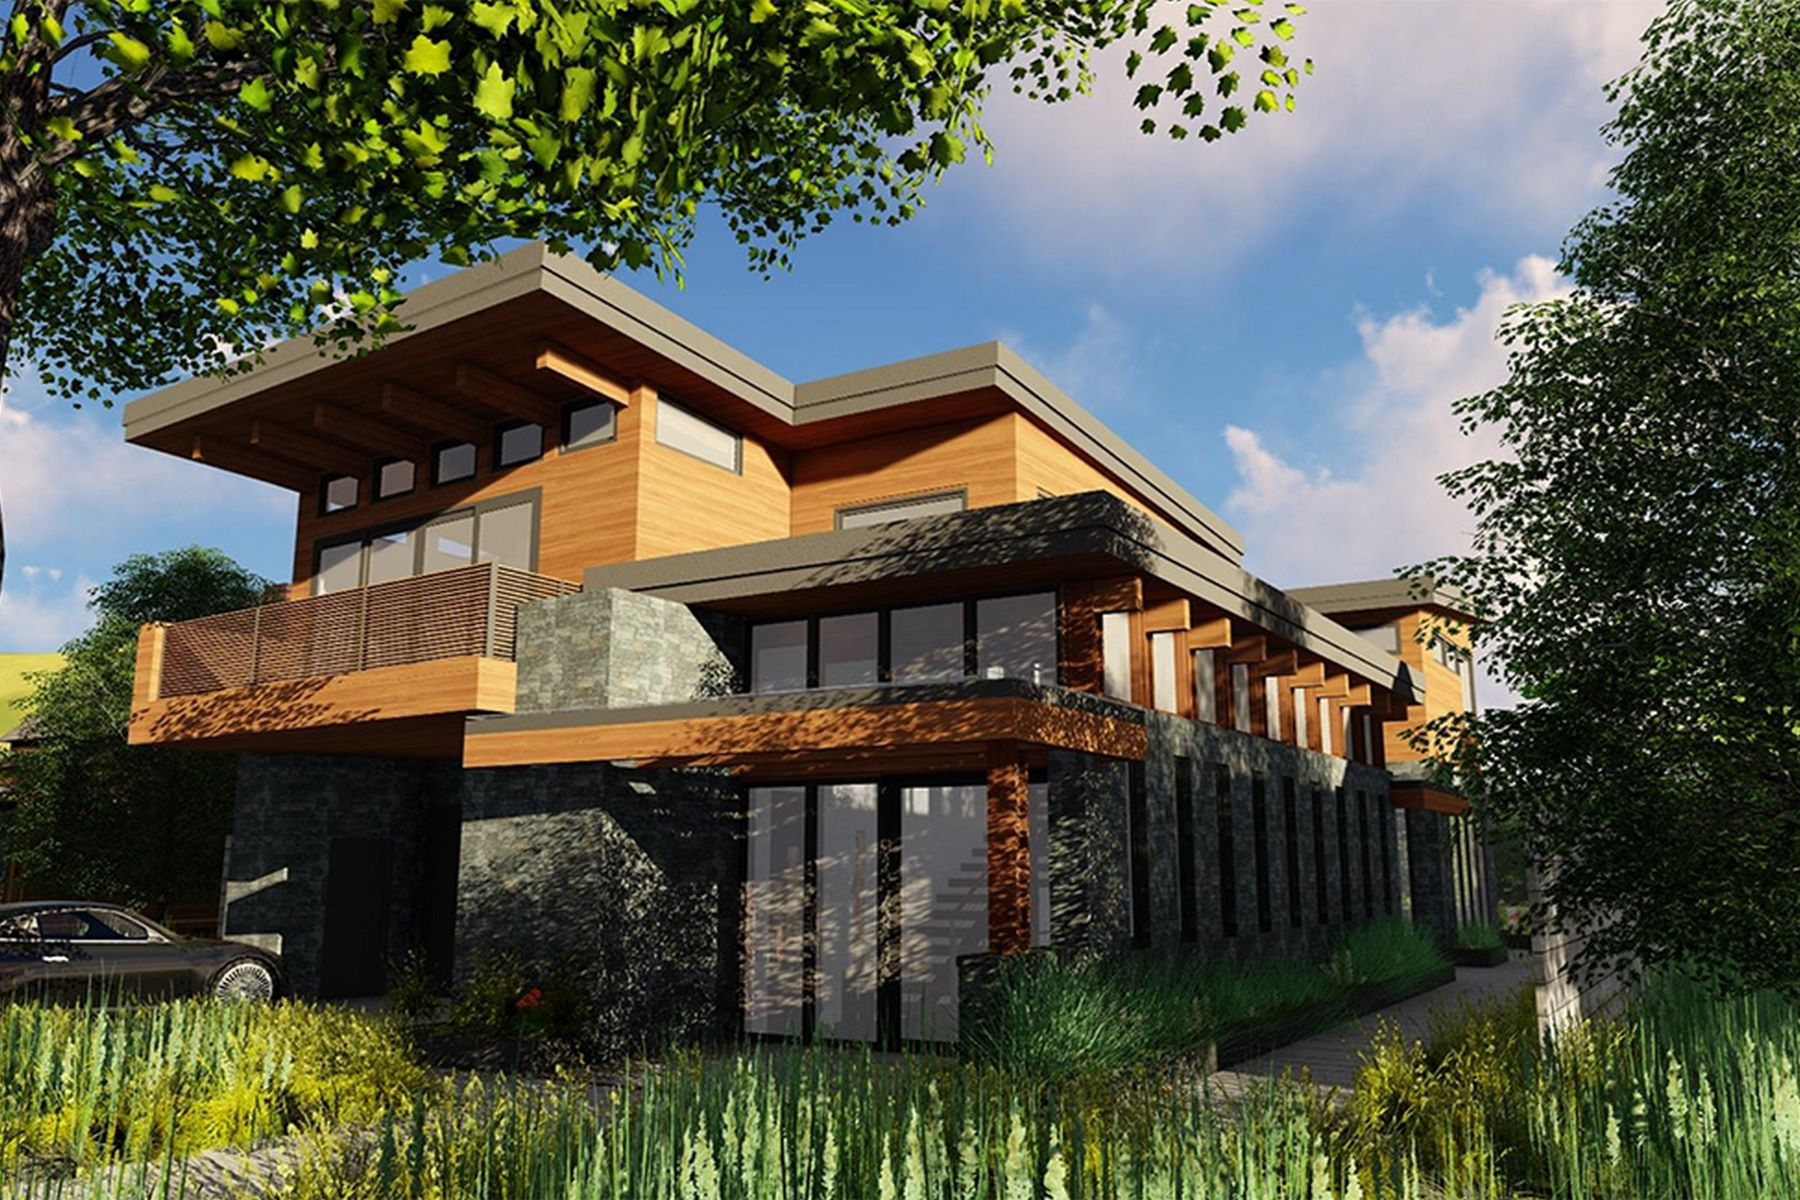 Single Family Home for Sale at The Best of the West End 300 Lake Avenue West End, Aspen, Colorado, 81611 United States